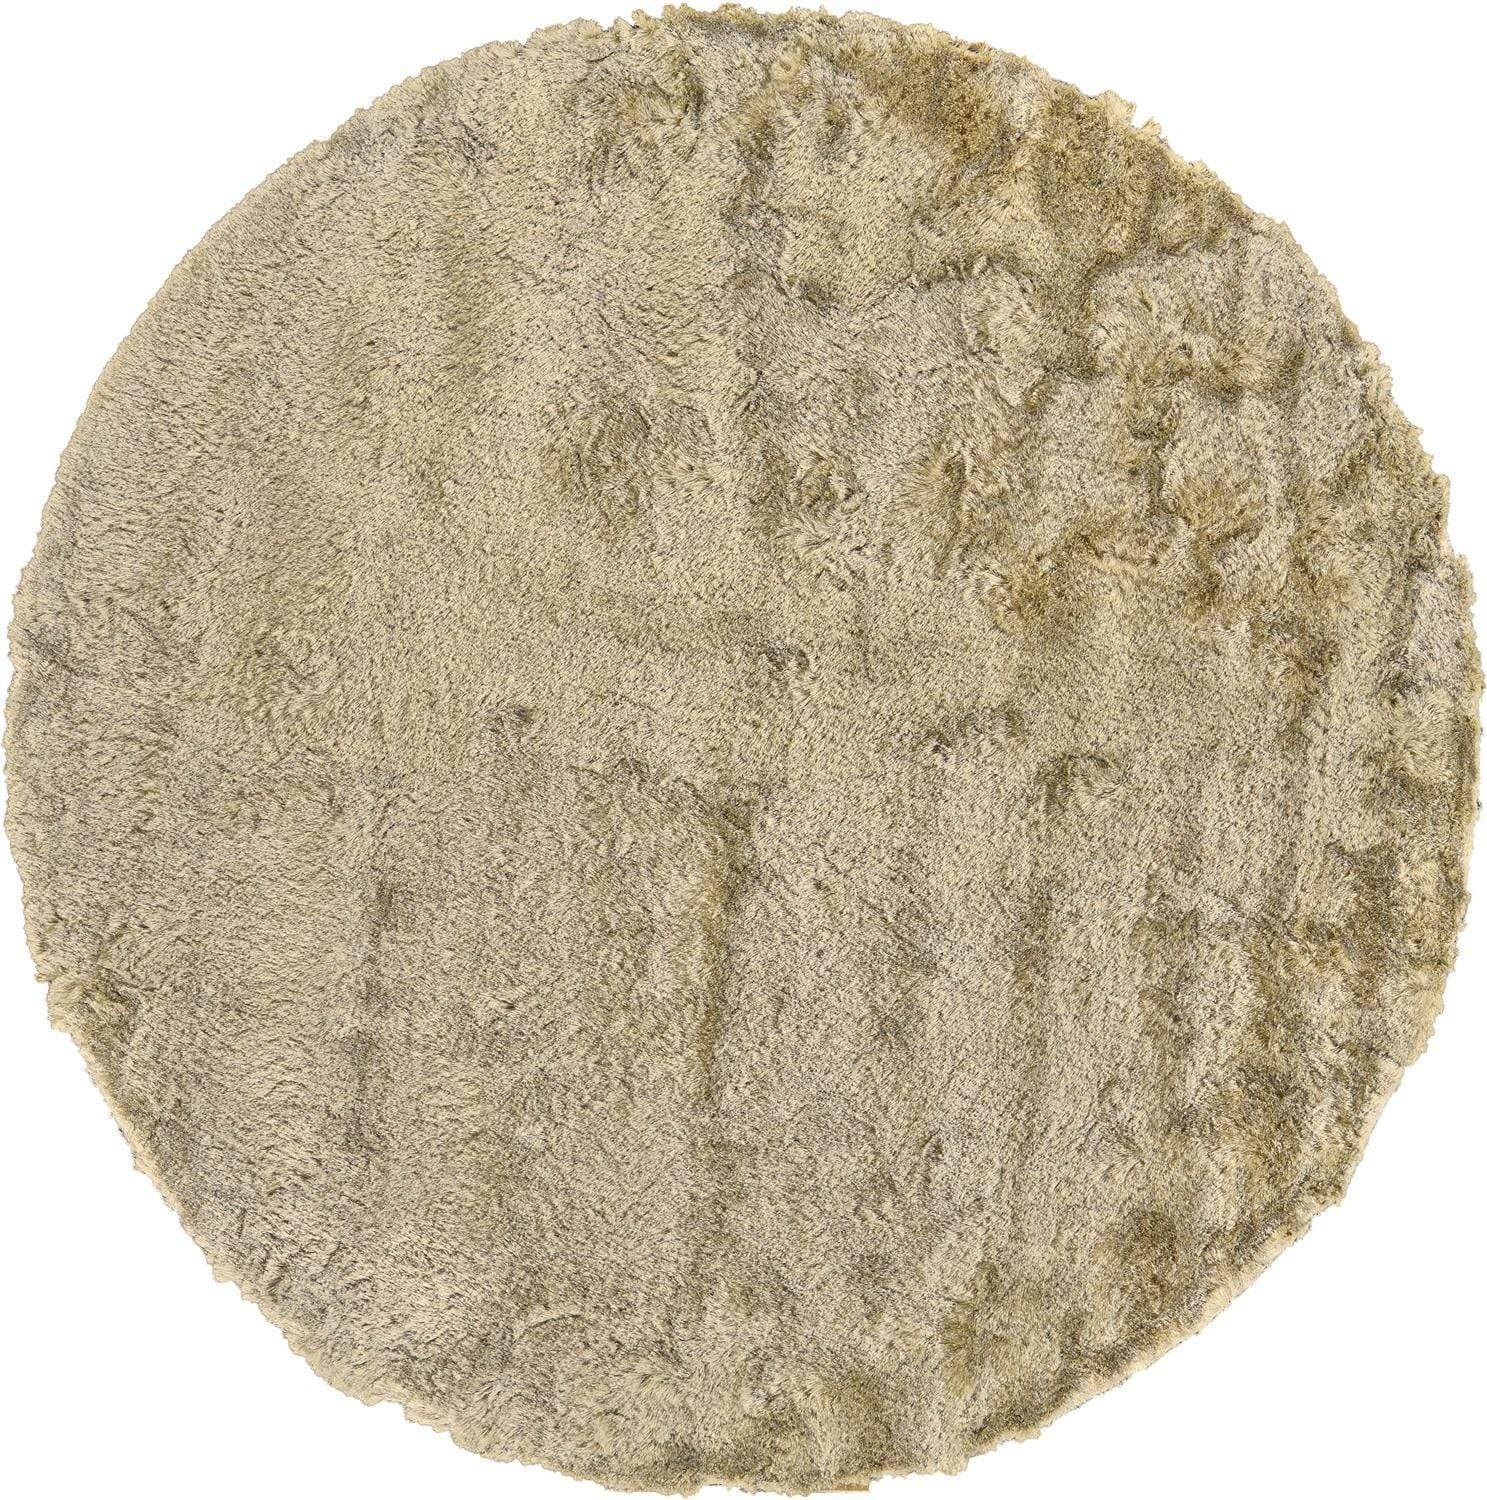 "Feizy Feizy Indochine Plush Shag Rug - Metallic Sheen Cream & Beige 2' x 3'-4"" 4944550FCRM000A25"